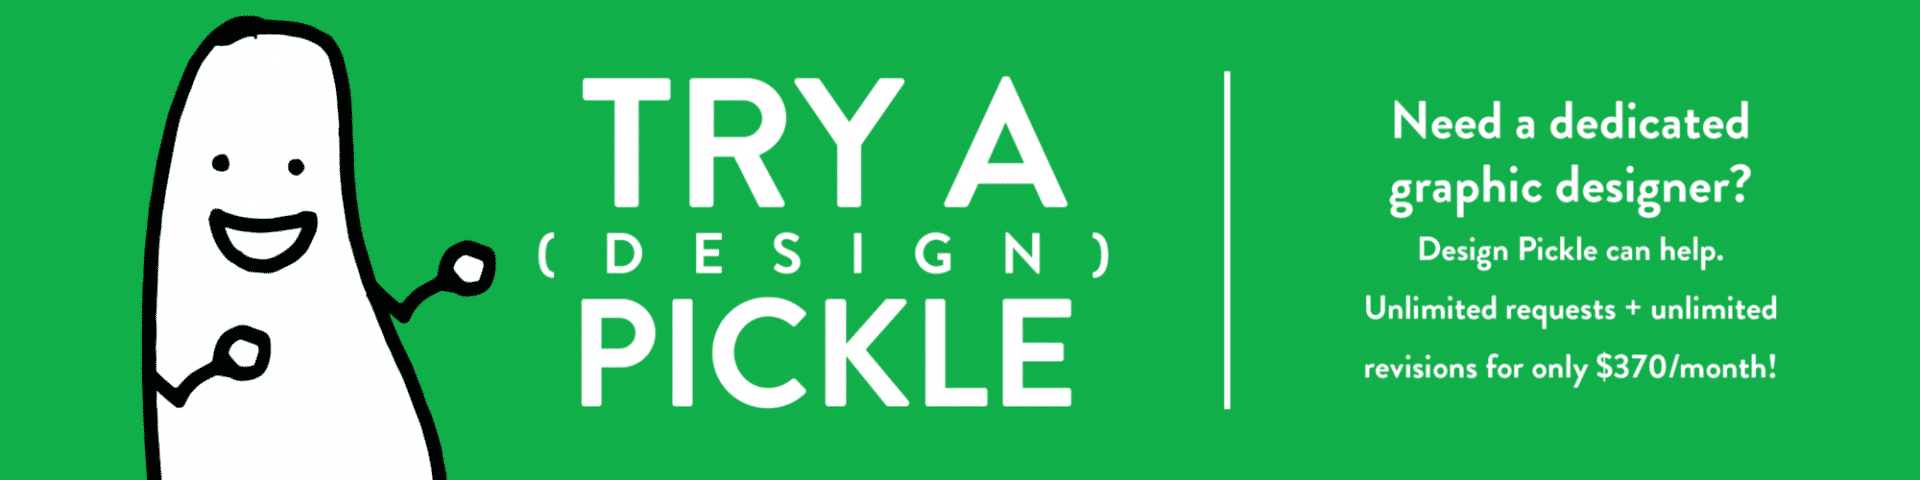 Design Pickle Plans